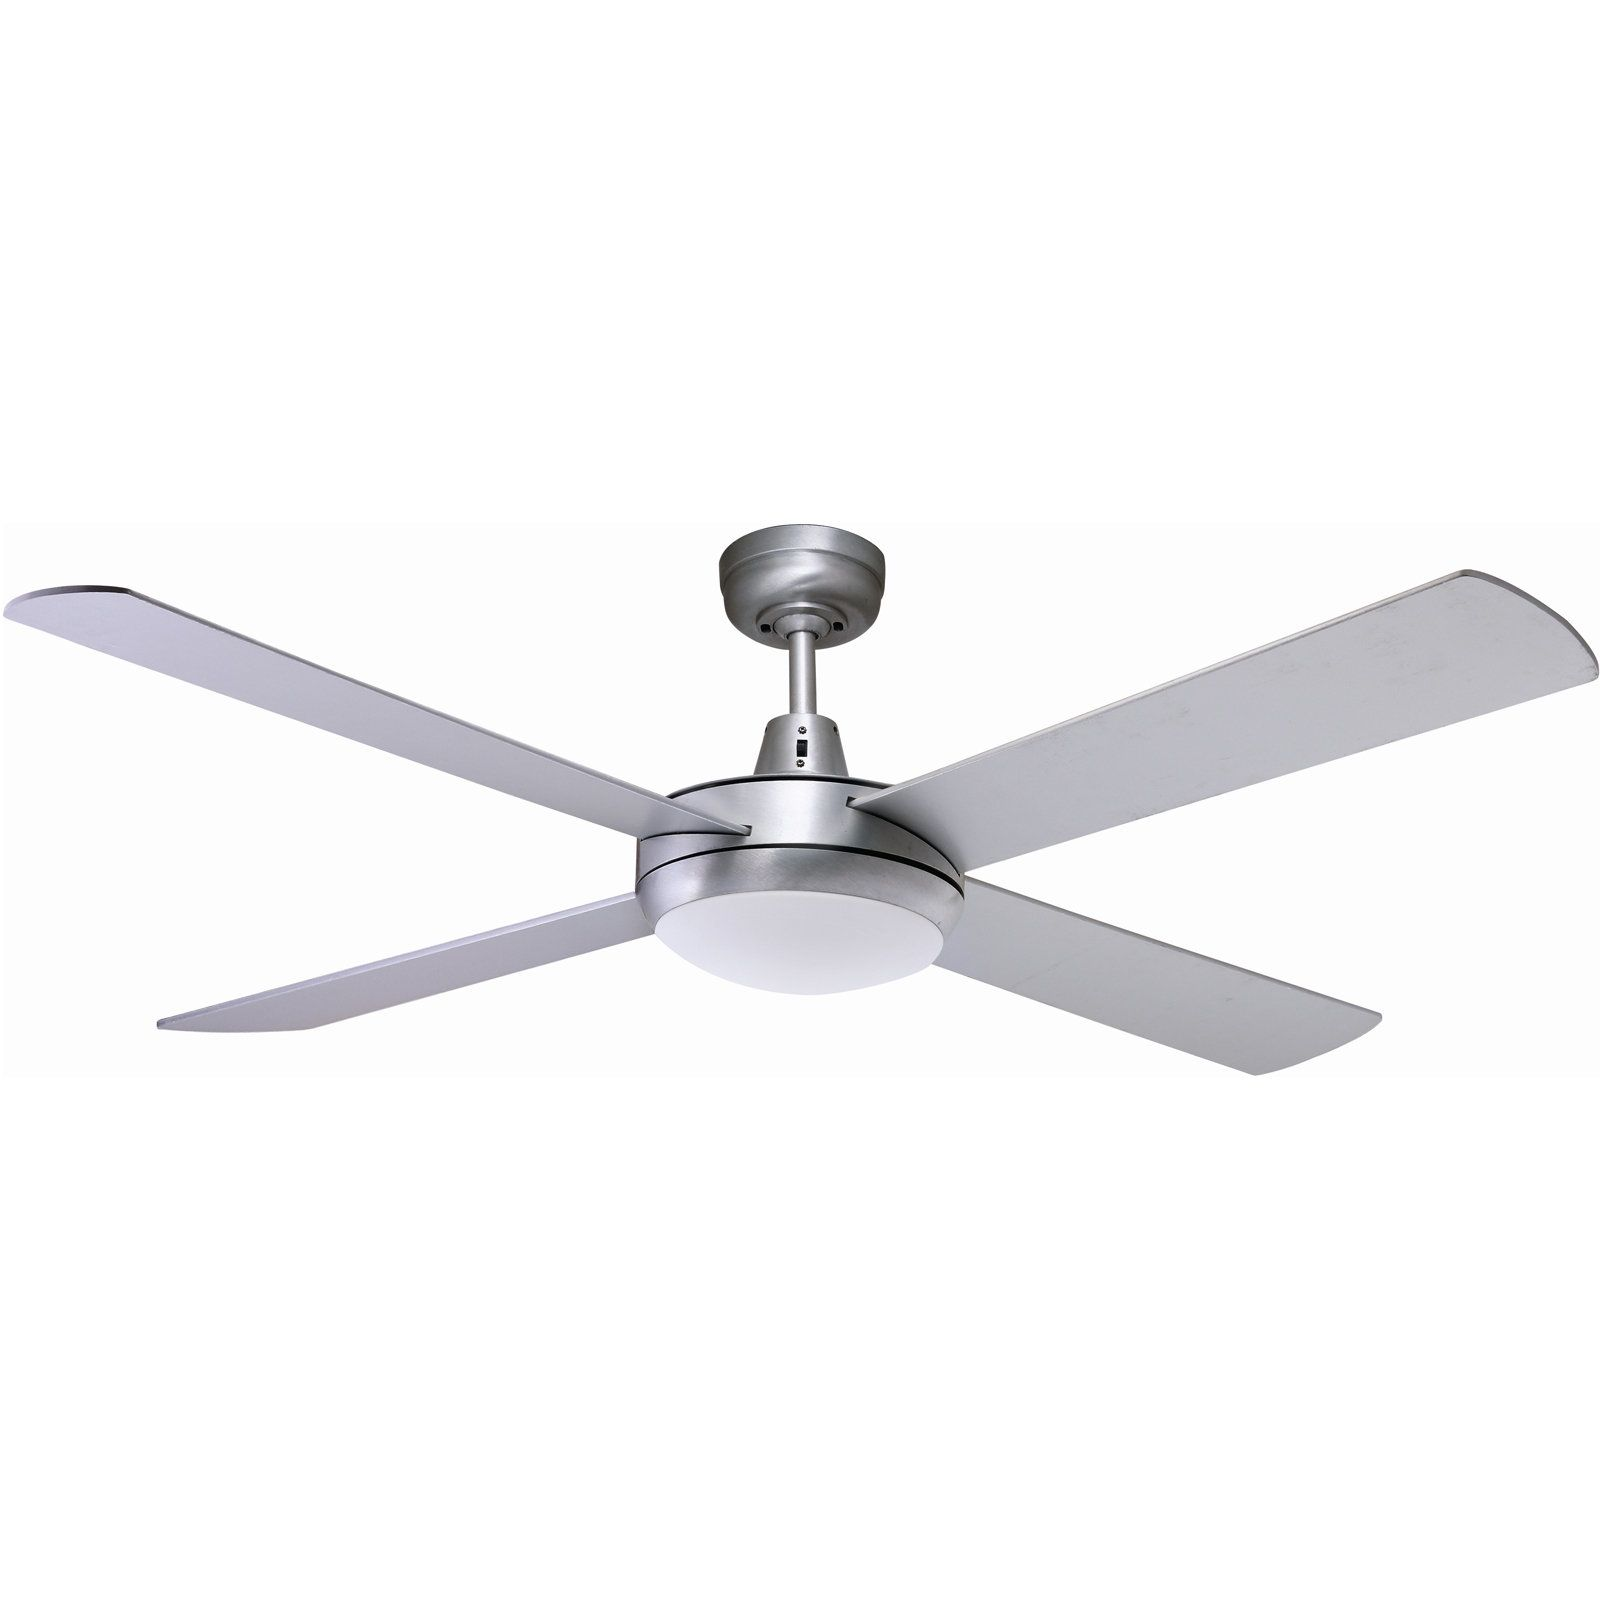 Ceiling · Dimmer Switch Ceiling Fan Hum